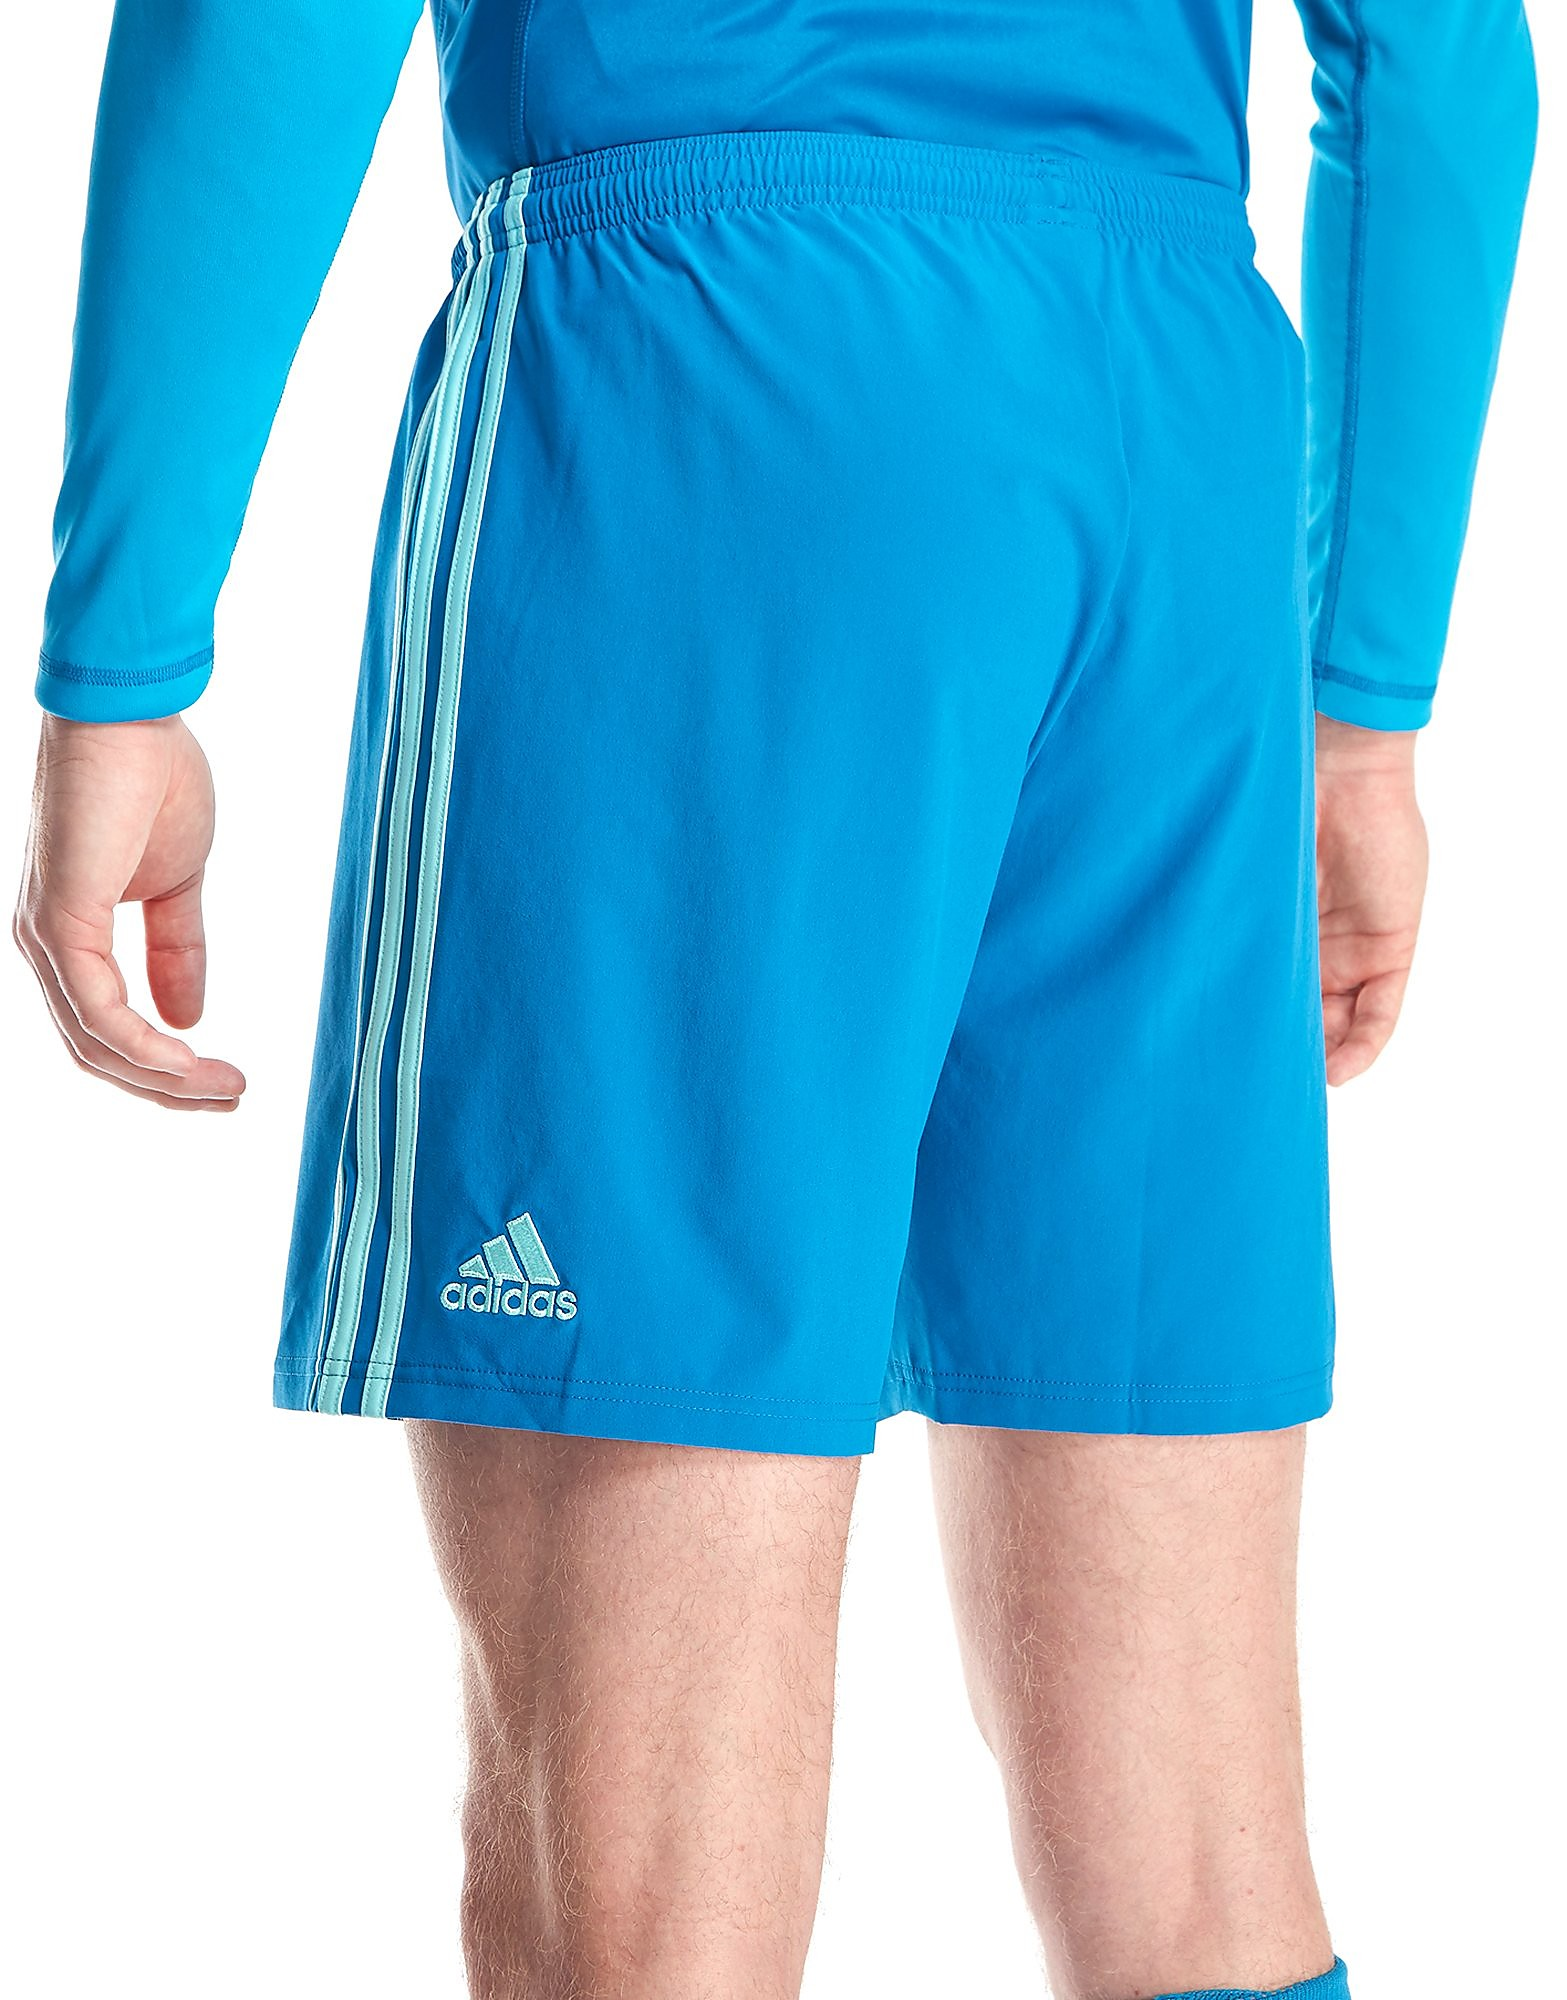 adidas Wales 2018 Home Goalkeeper Shorts